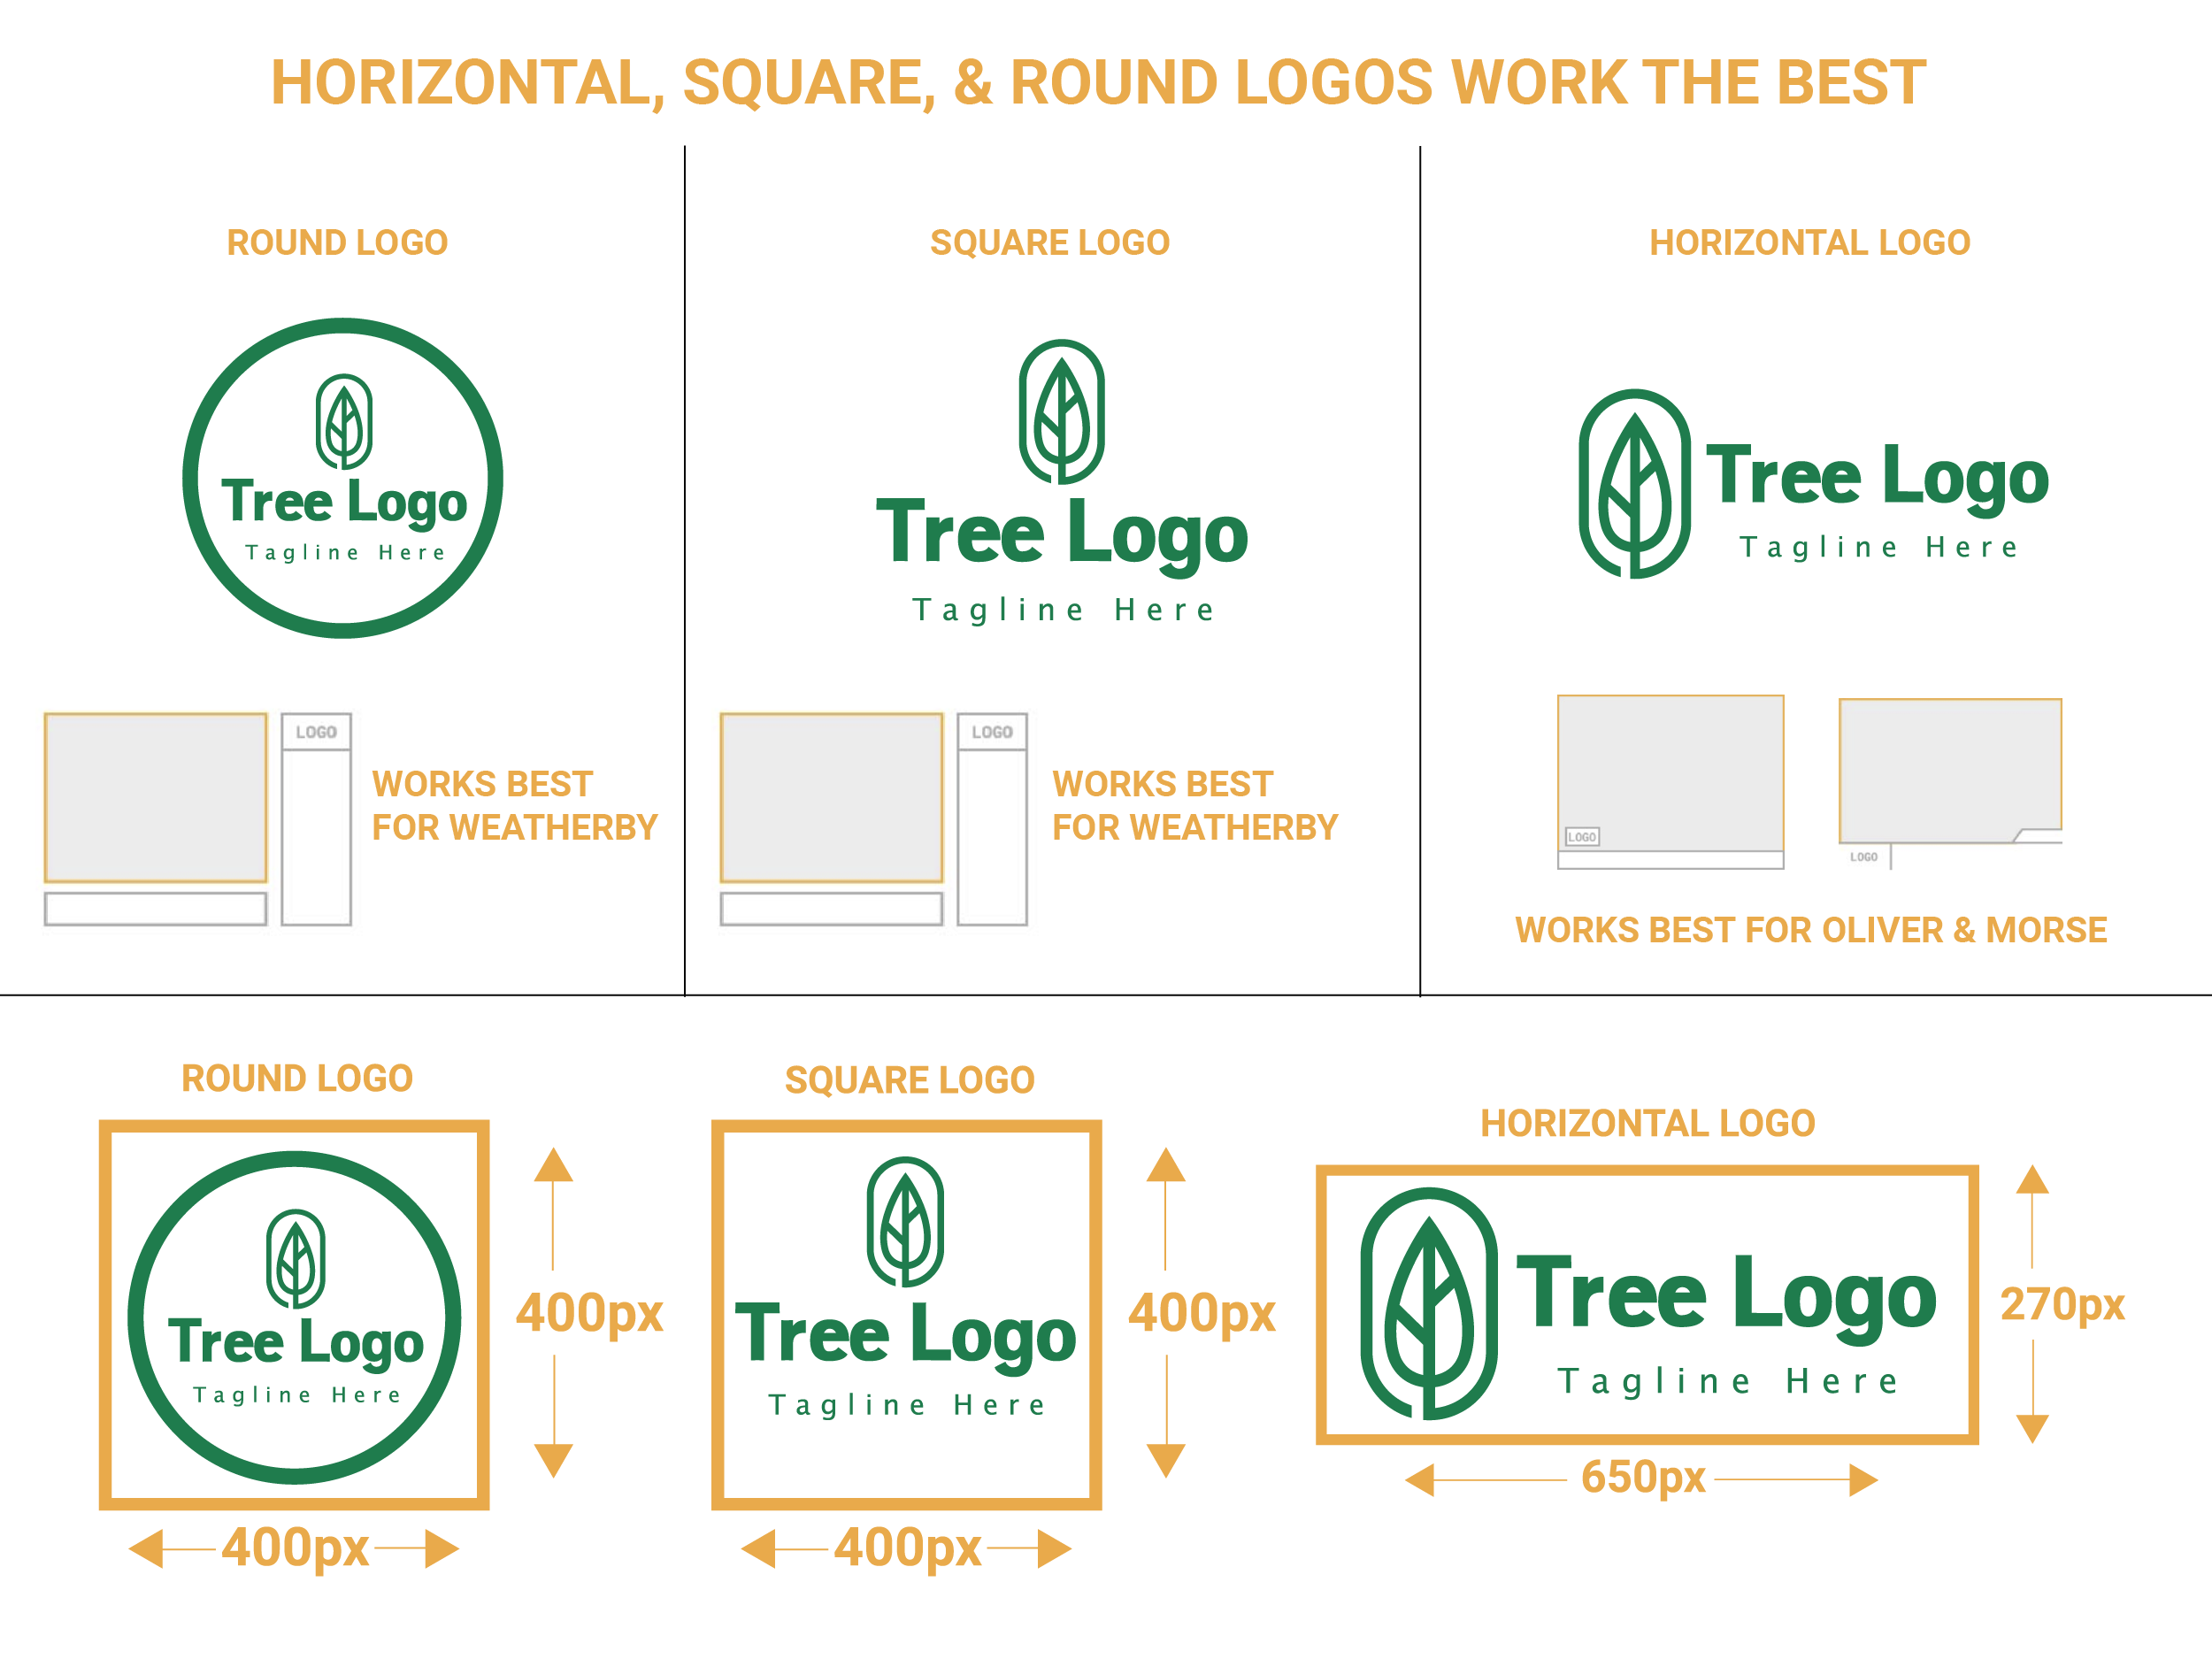 An image showing which logo shapes work best with the logo friendly layouts